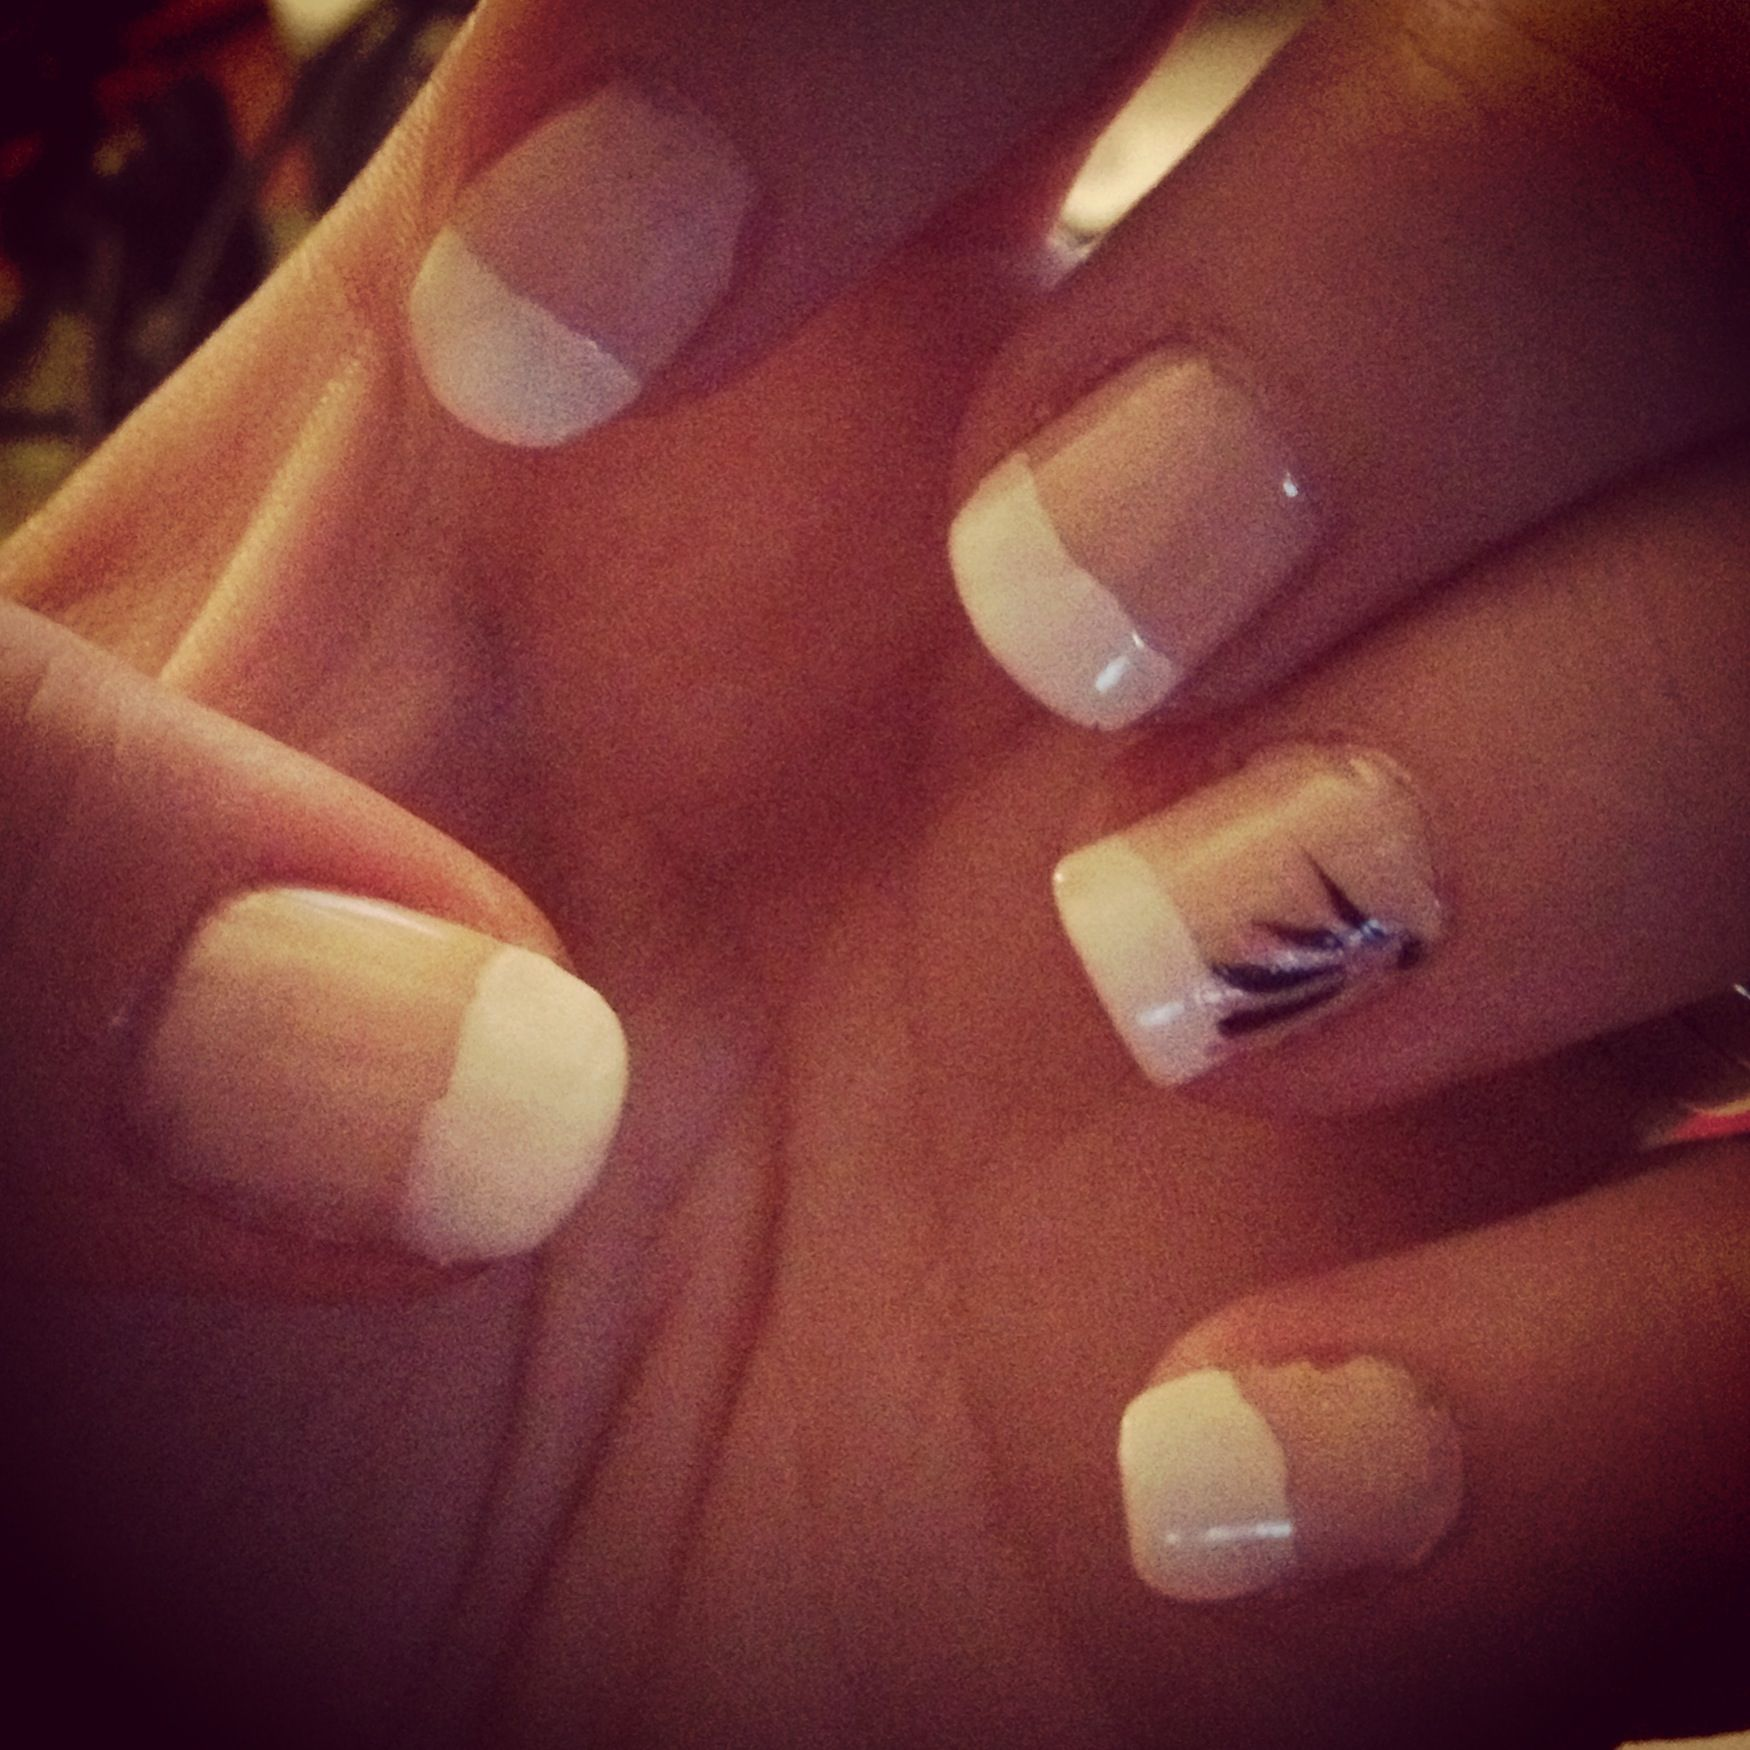 French Manicure Shallac Gel Nails With Peacock Feather And Gems Ring Finger Design Feather Nails French Nail Designs Feather Nail Art